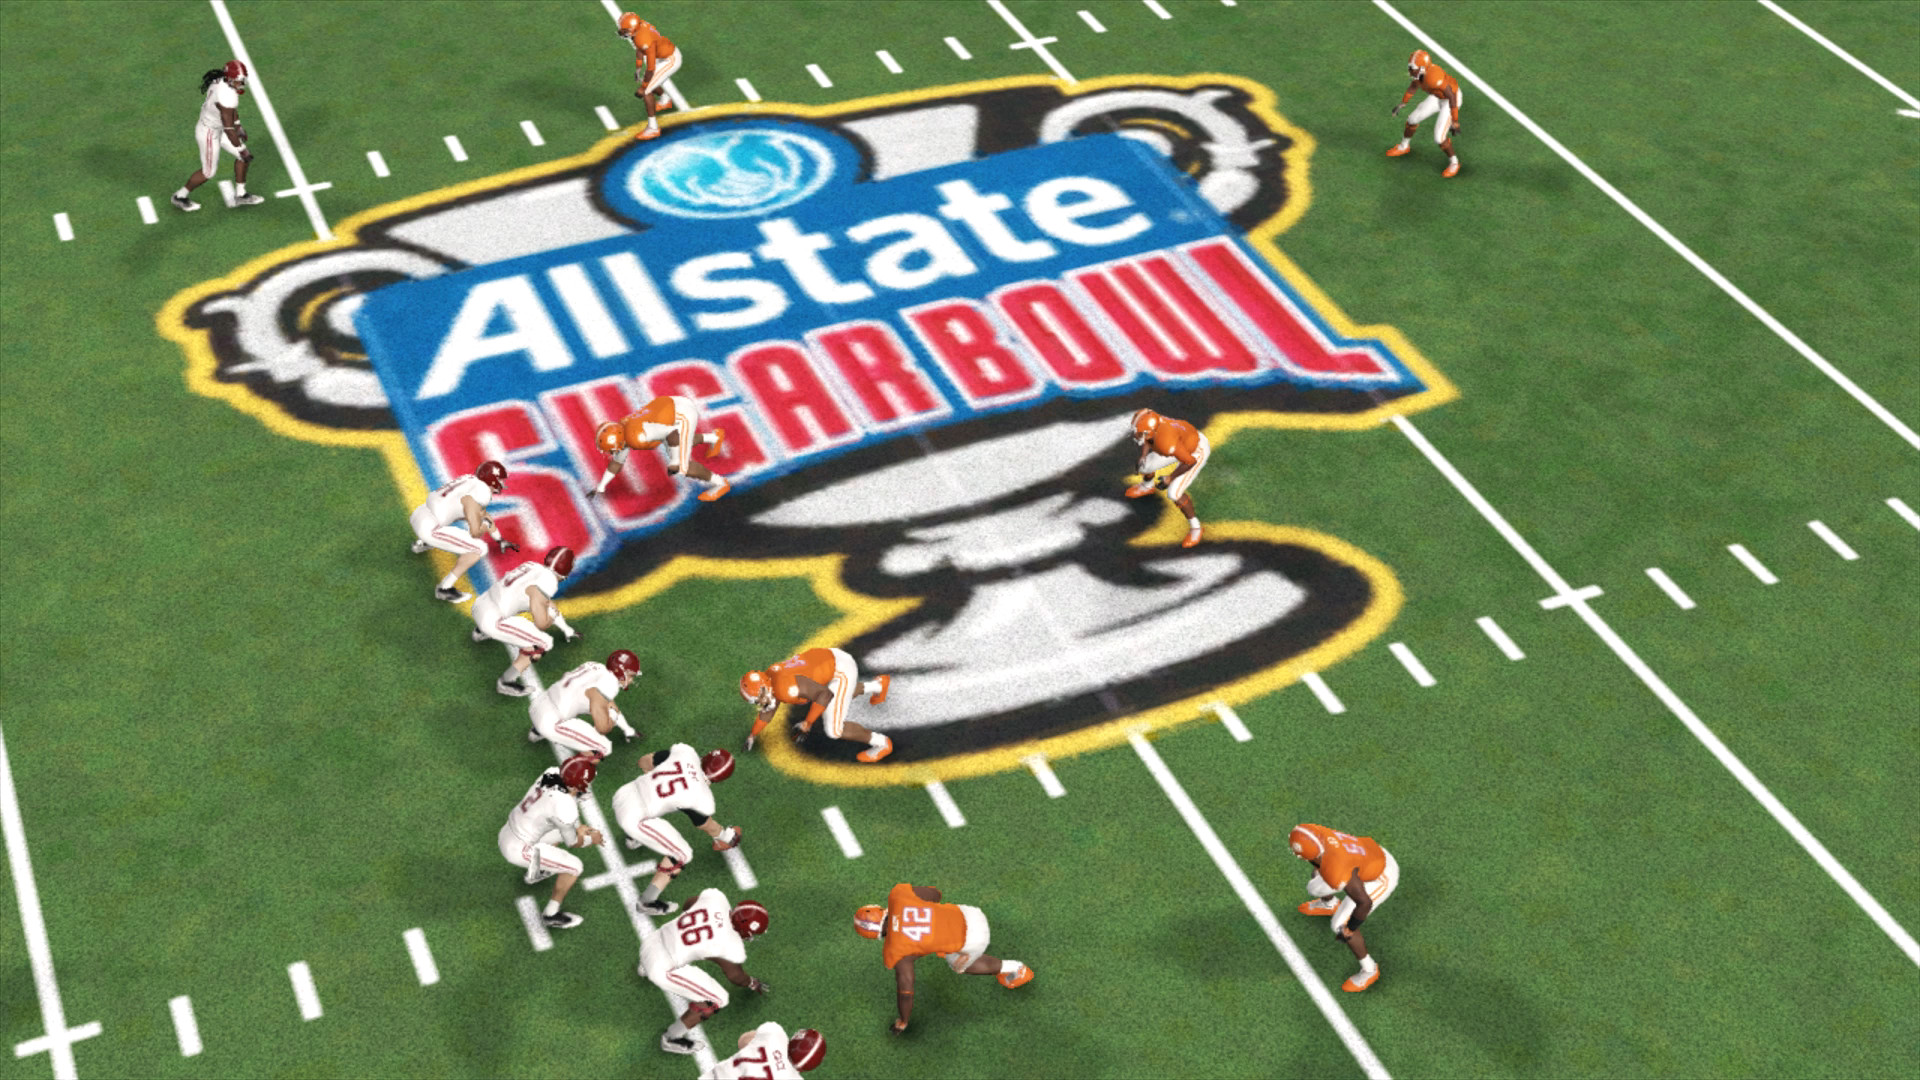 No. 4 Alabama vs No. 1 Clemson in the Sugar Bowl